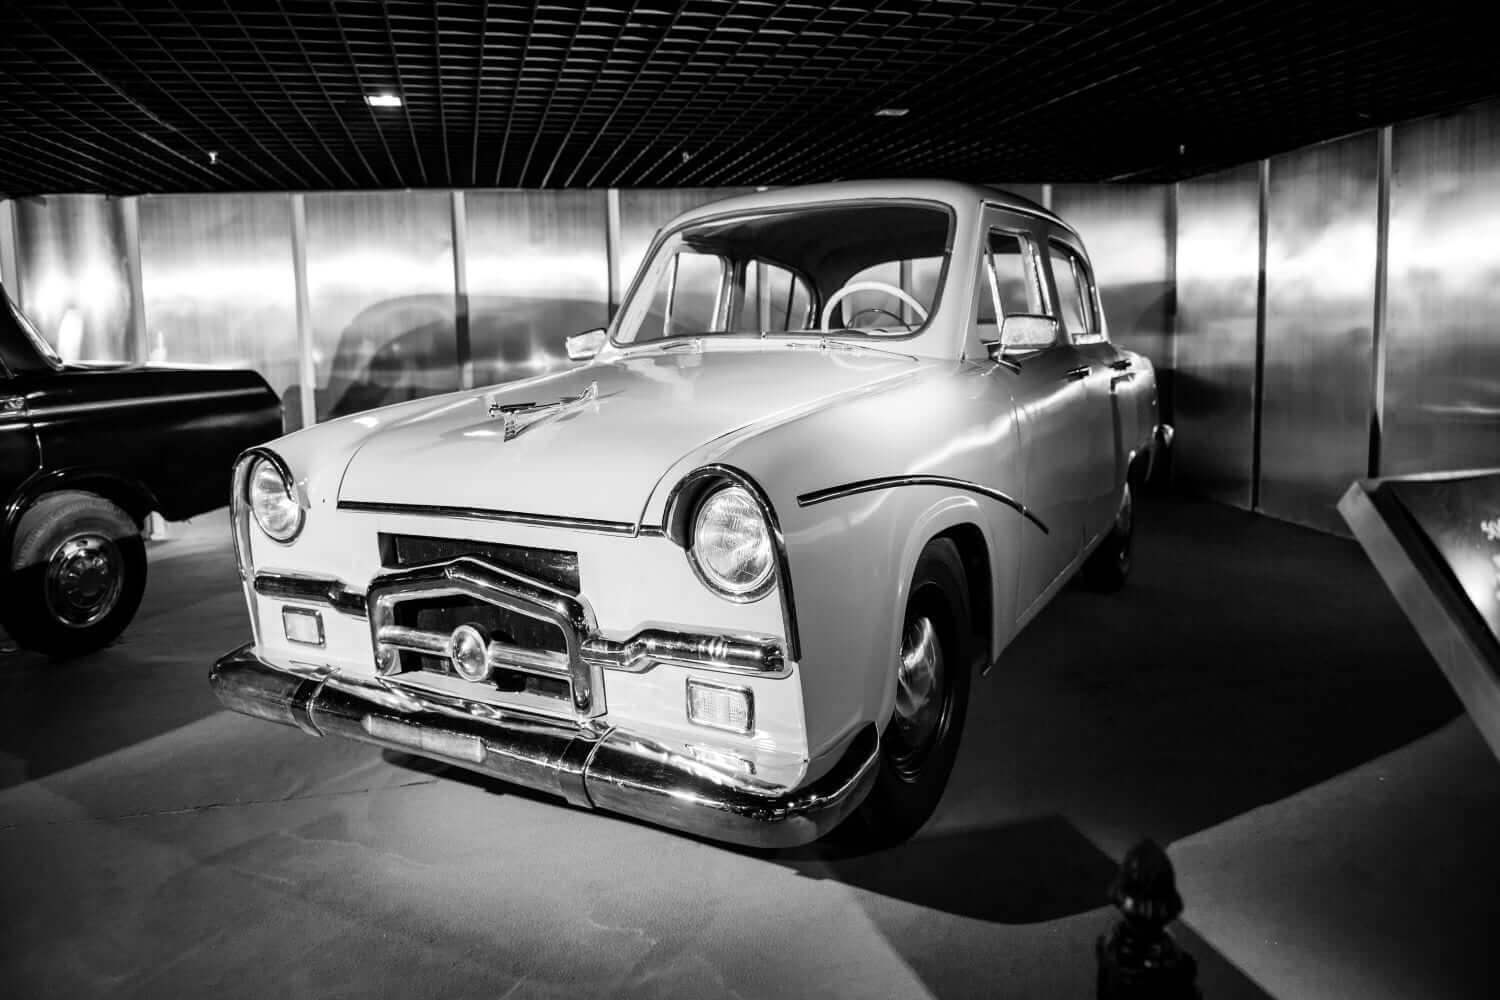 photo of car from Studabaker National Museum